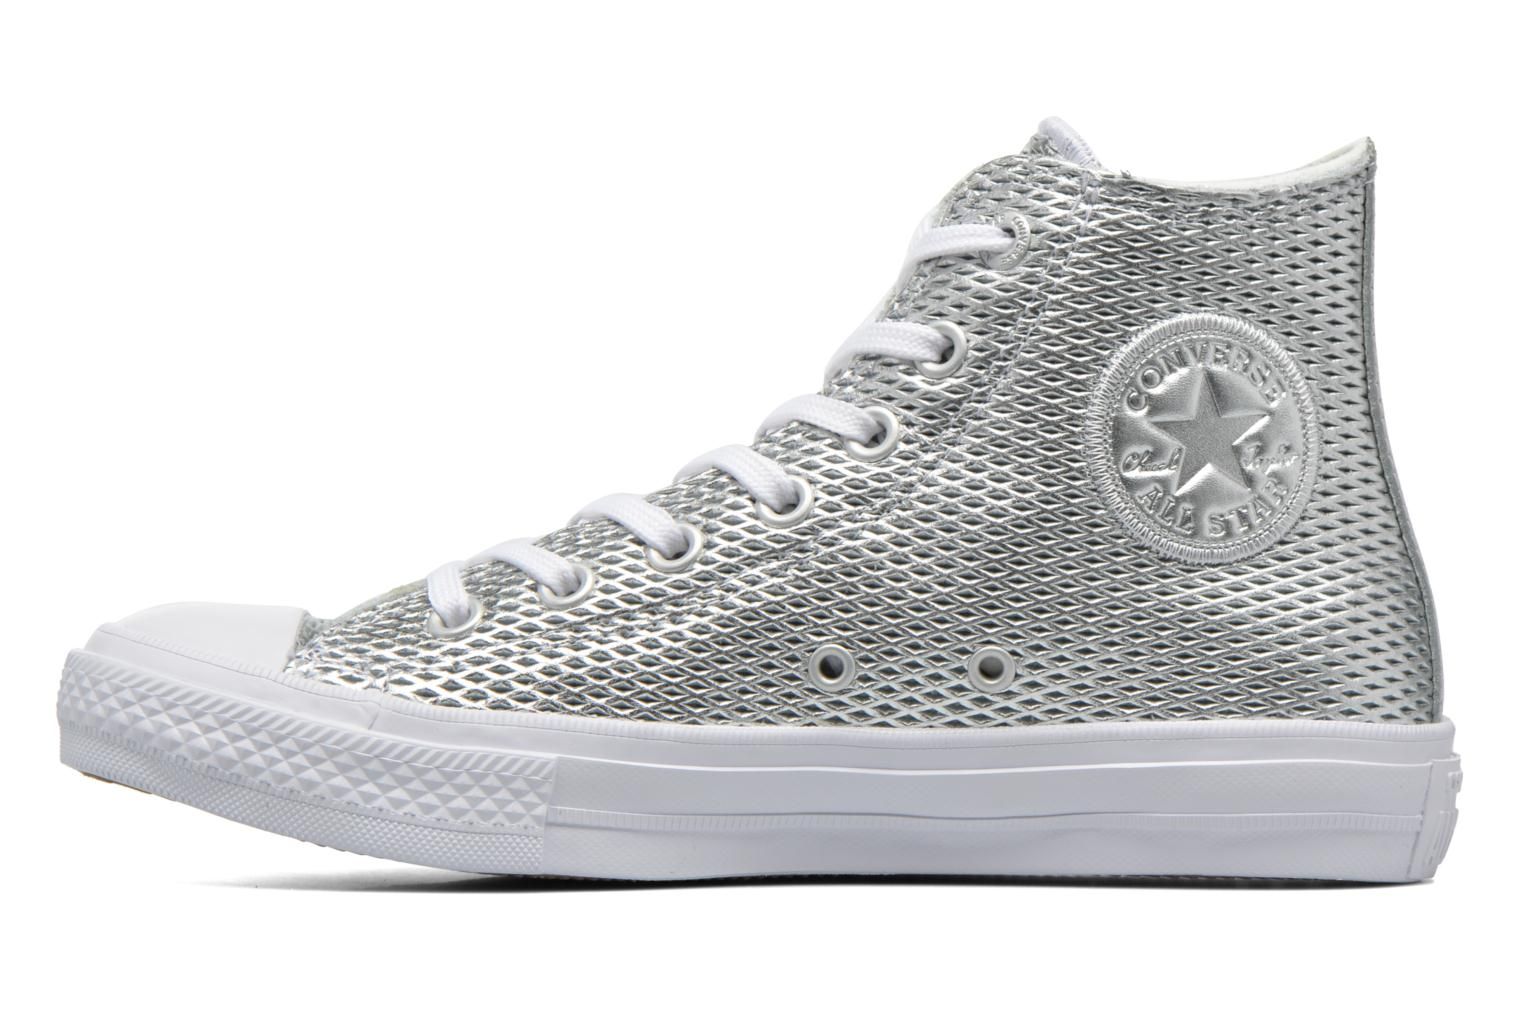 Chuck Taylor All Star II Hi Perf Metallic Leather Silver/White/White